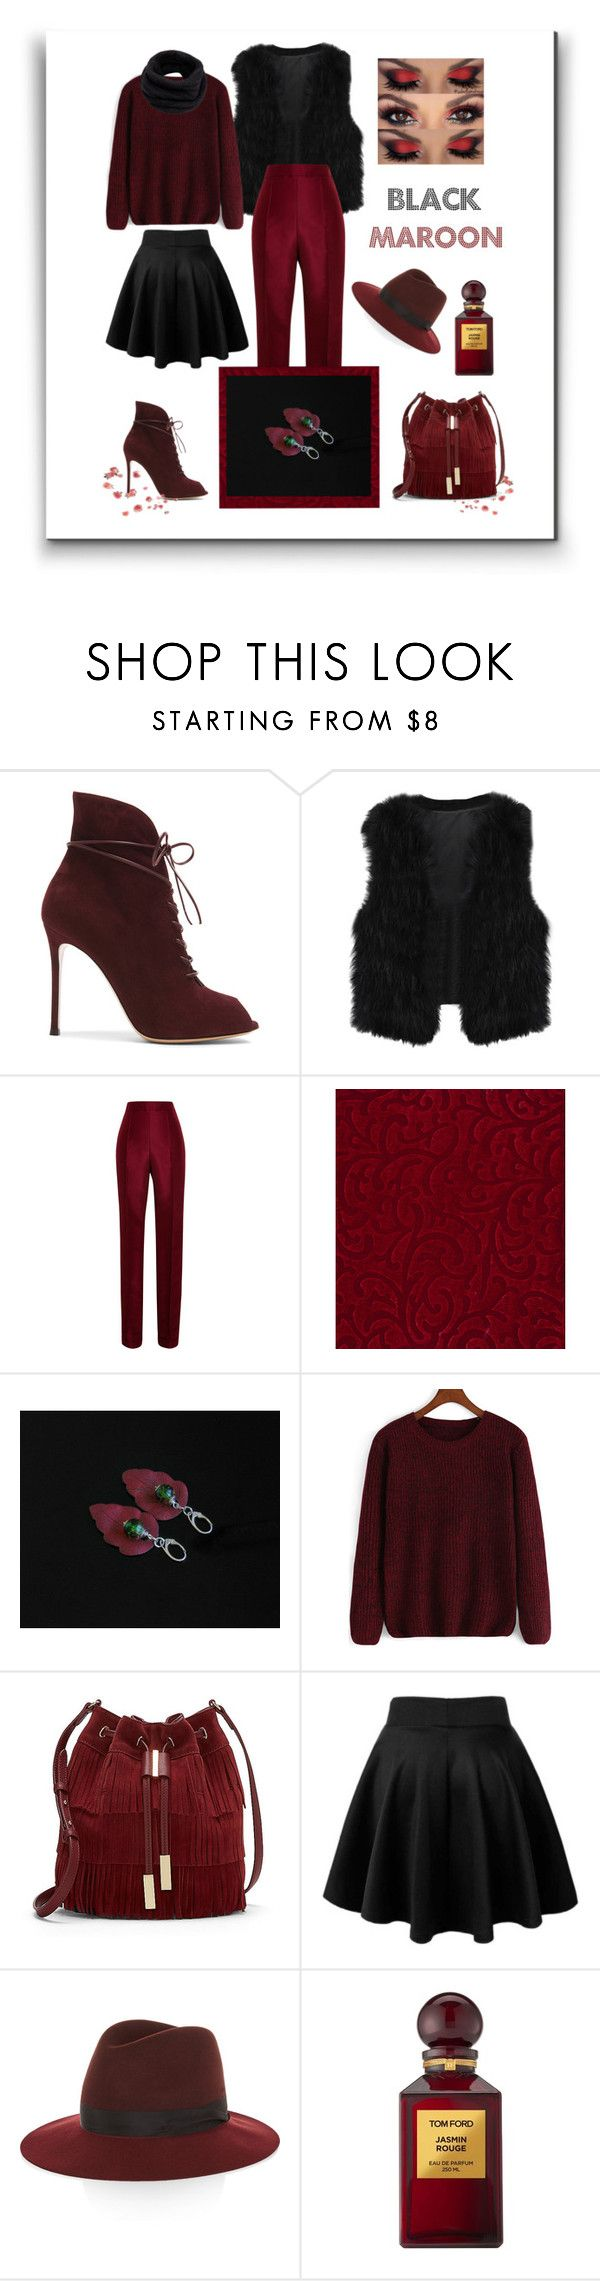 """Black & Maroon"" by styledonna on Polyvore featuring moda, Gianvito Rossi, Rosie Assoulin, Vince Camuto, rag & bone, Tom Ford, Helmut Lang, trending, maroon i outfits"